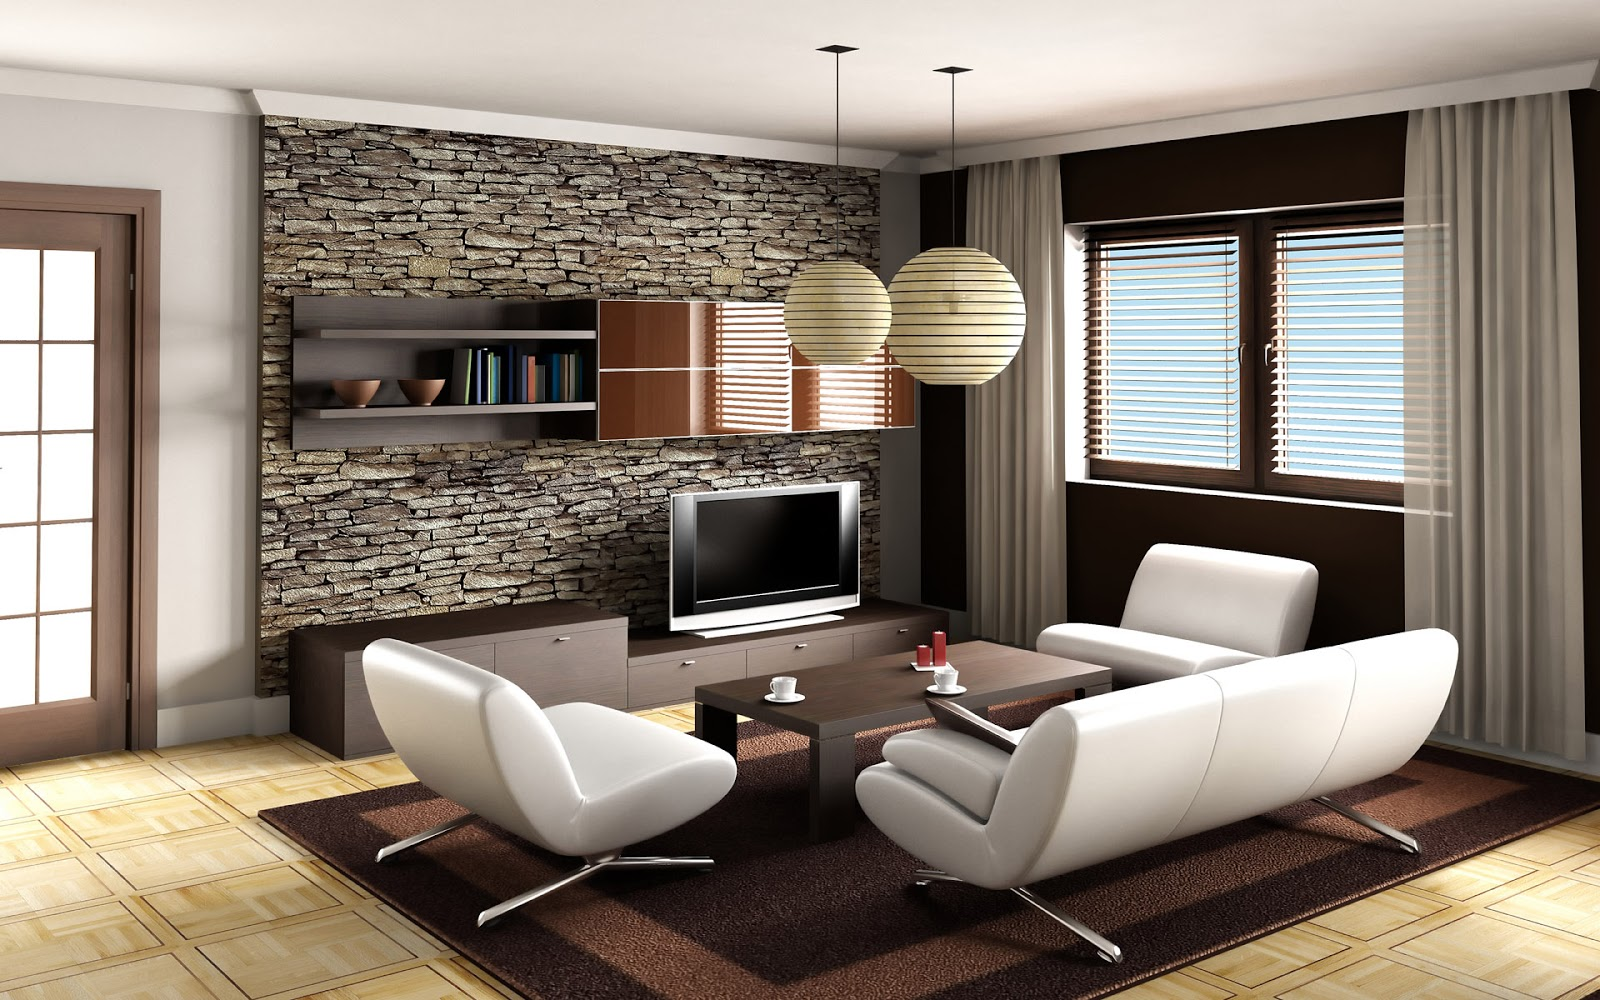 Arrangement Of Luxury Living Room Ideas Dream House: design ideas for living room